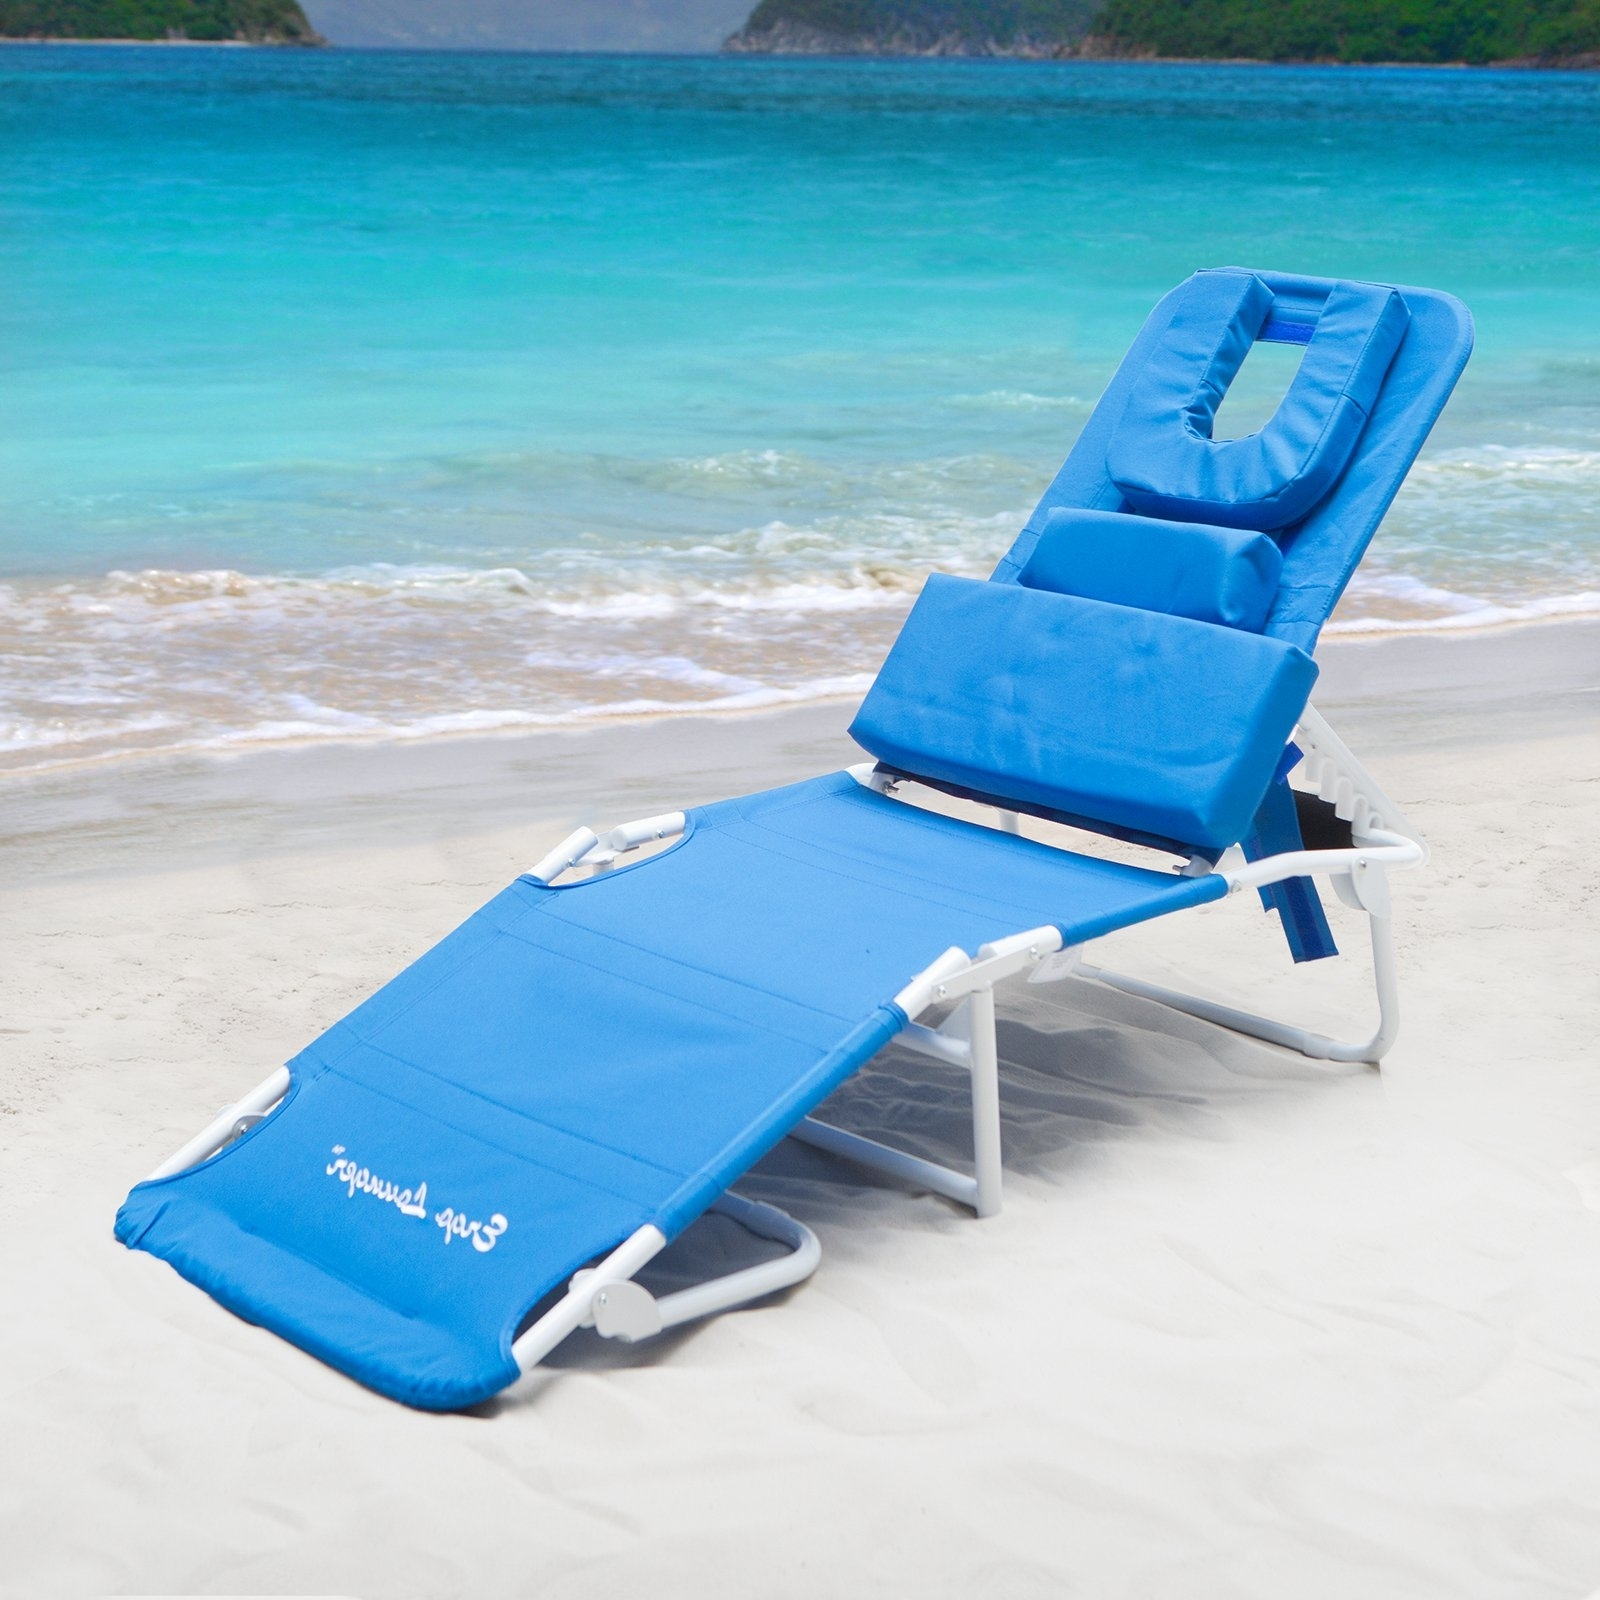 Beach Chaise Lounges Throughout Well Known Modern Beach Chaise Lounge Chairs Best House Design : Design Beach (View 8 of 15)